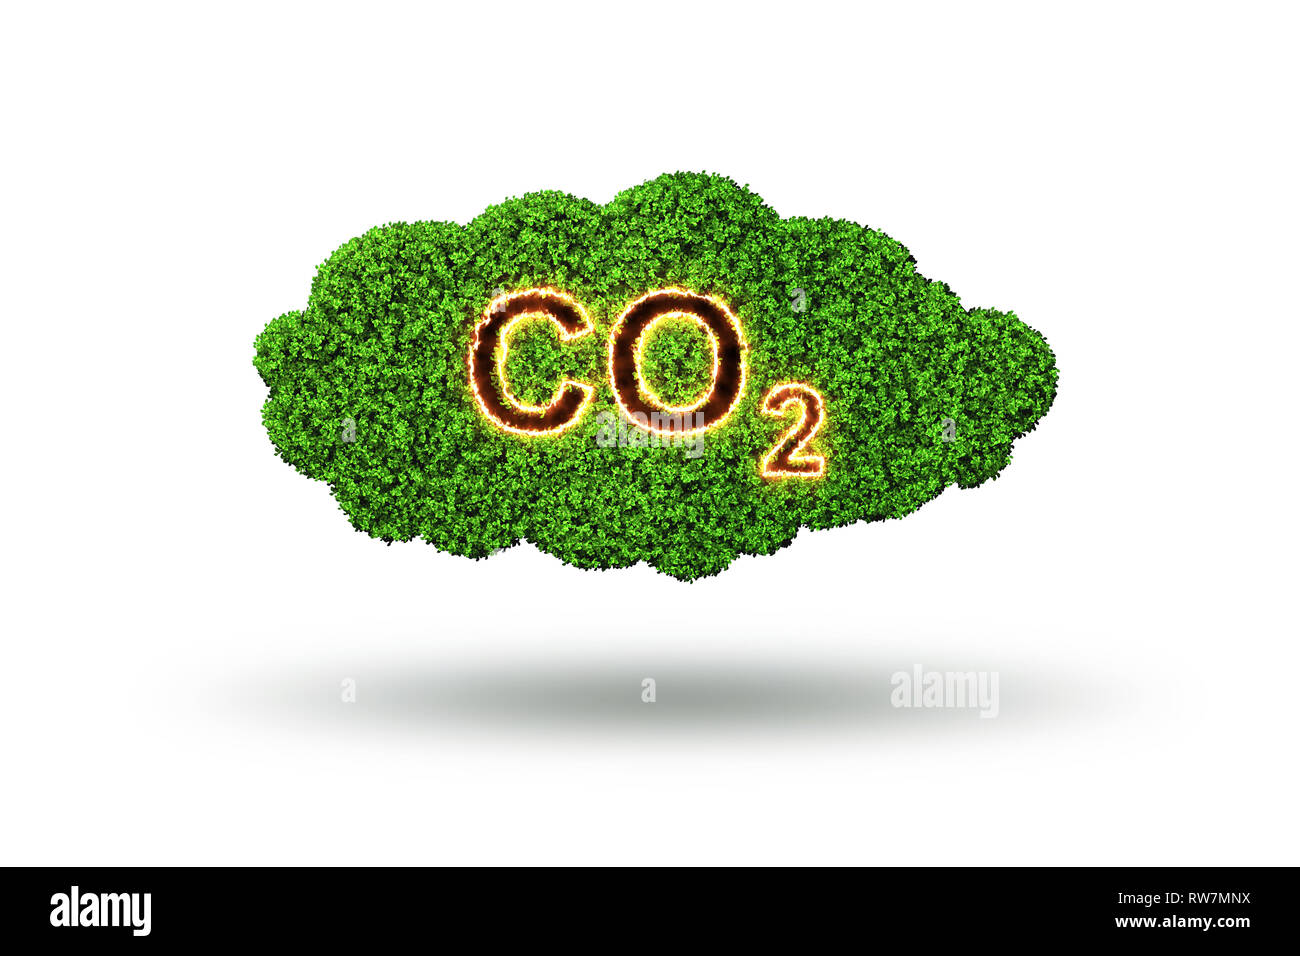 Ecological concept of greenhouse gas emissions - 3d rendering - Stock Image